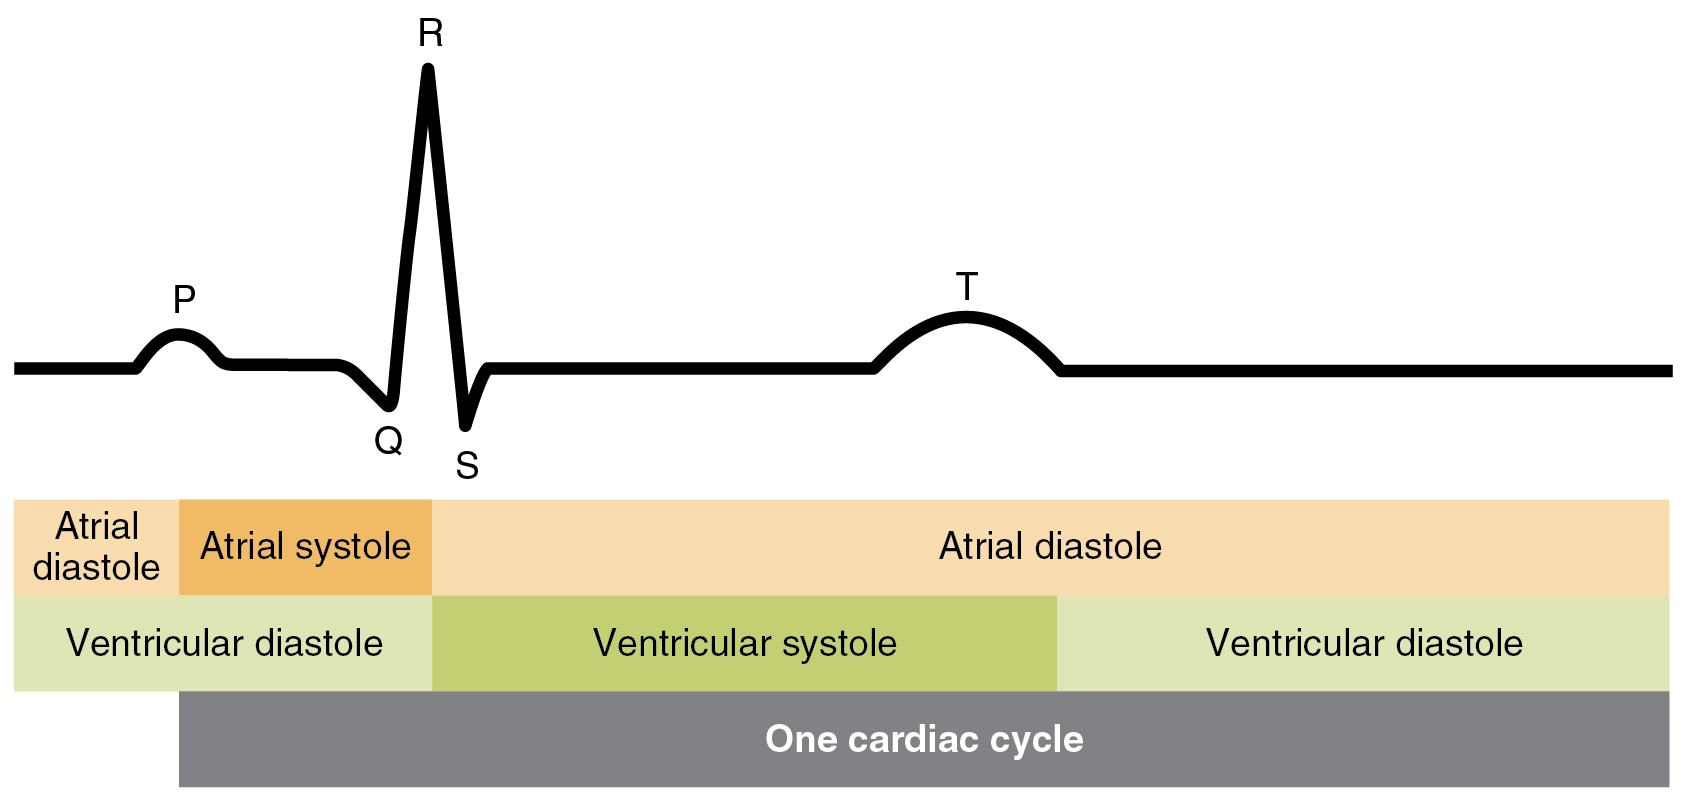 hight resolution of this image shows the correlation between the cardiac cycle and the different stages in a electrocardiogram